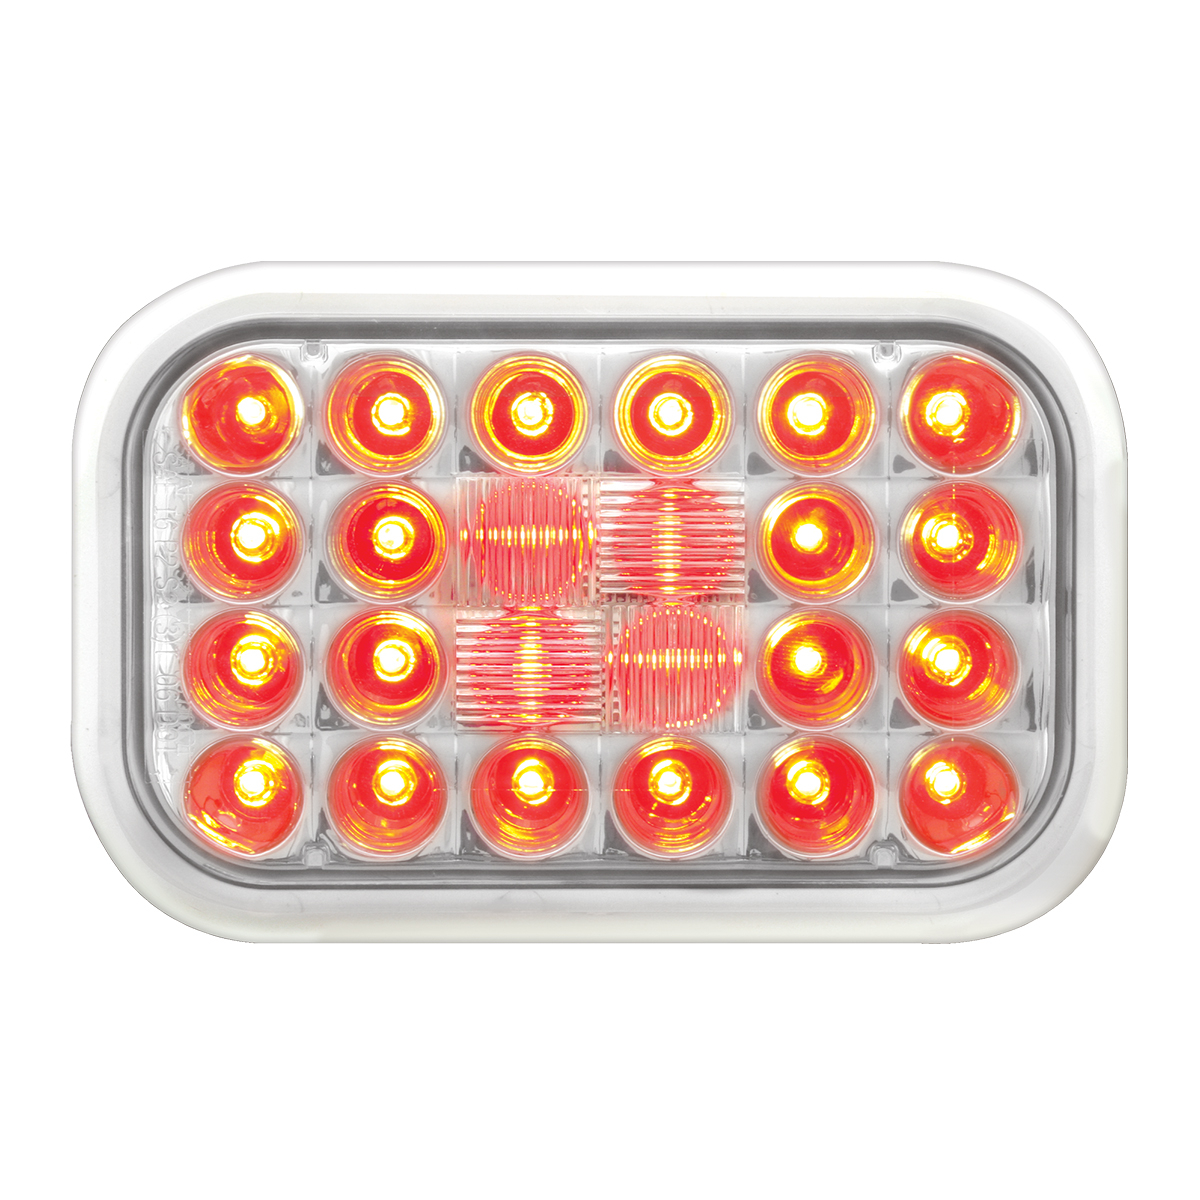 #77183 Pearl LED Flat - Red/Clear